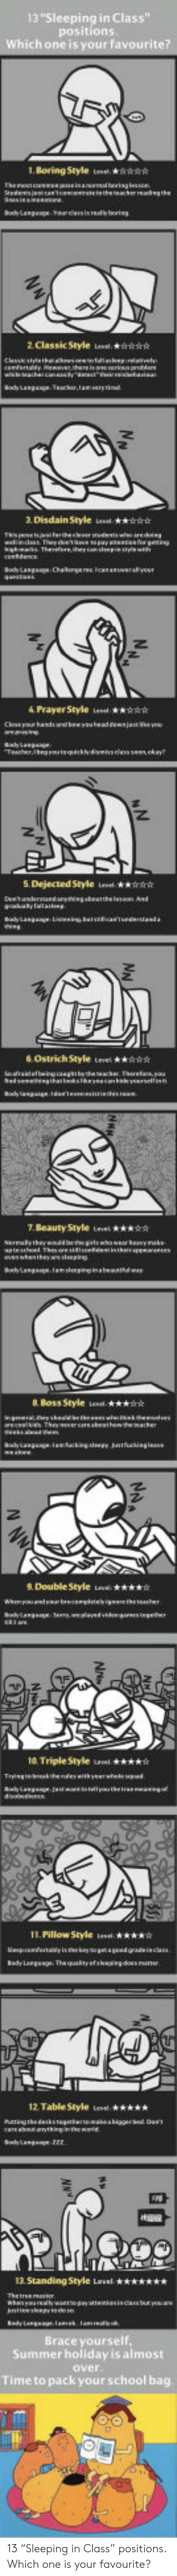 """dejected: 13""""Sleeping in Class""""  positions  Which o  1. Boring Style ese kR  2 ClassicStyle v  3 Disdain Style eest  4 PrayerStyle eHA  5 Dejected Style  Ostrich Style Level s  7. Beauty Style evel  & Boss Style it  2  9 DosubleStyle w  10. Triple Style  une. ★★★★☆  li.Pillow Style iesel  ★☆  12 Table Style eve  13. Standing Style Level  Summer holiday is almost  over  Time to pack your school bag 13 """"Sleeping in Class"""" positions.  Which one is your favourite?"""